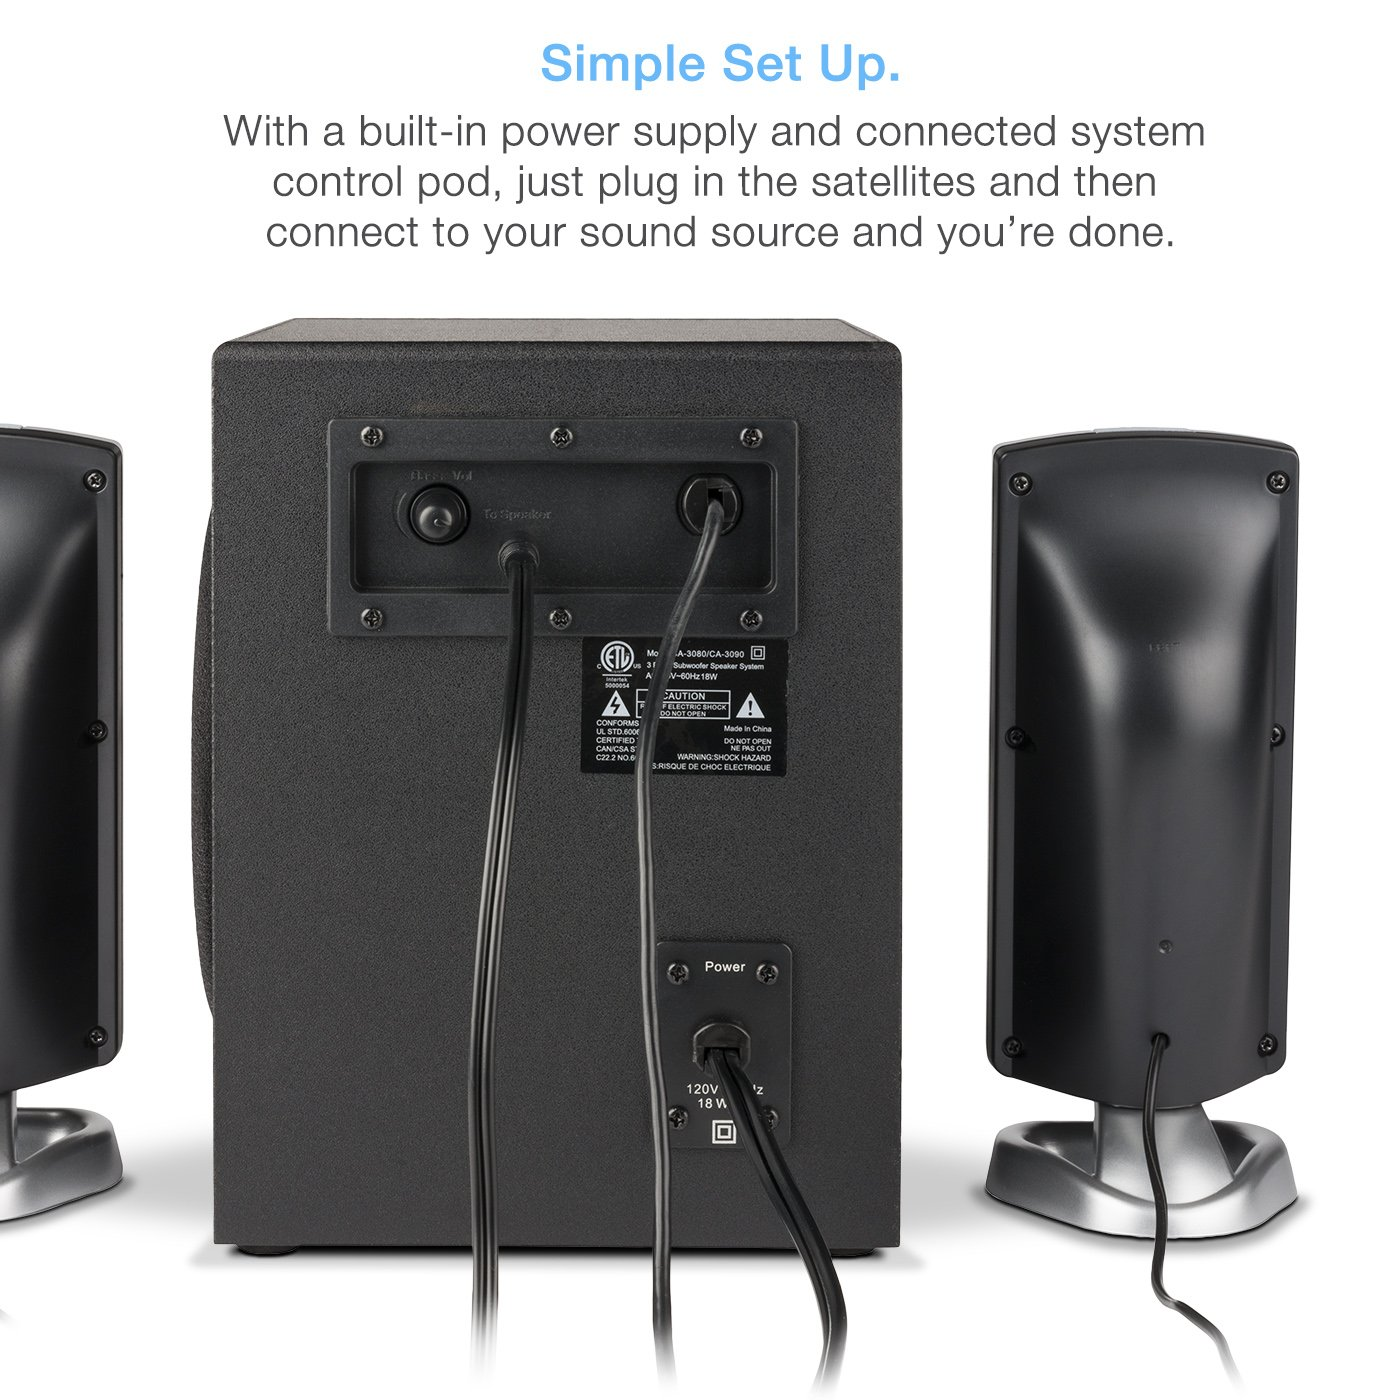 Cyber Acoustics 2.1 Subwoofer Speaker System with 18W of Power – Great for Music, Movies, Gaming, and Multimedia Computer Laptops (CA-3090) by Cyber Acoustics (Image #6)